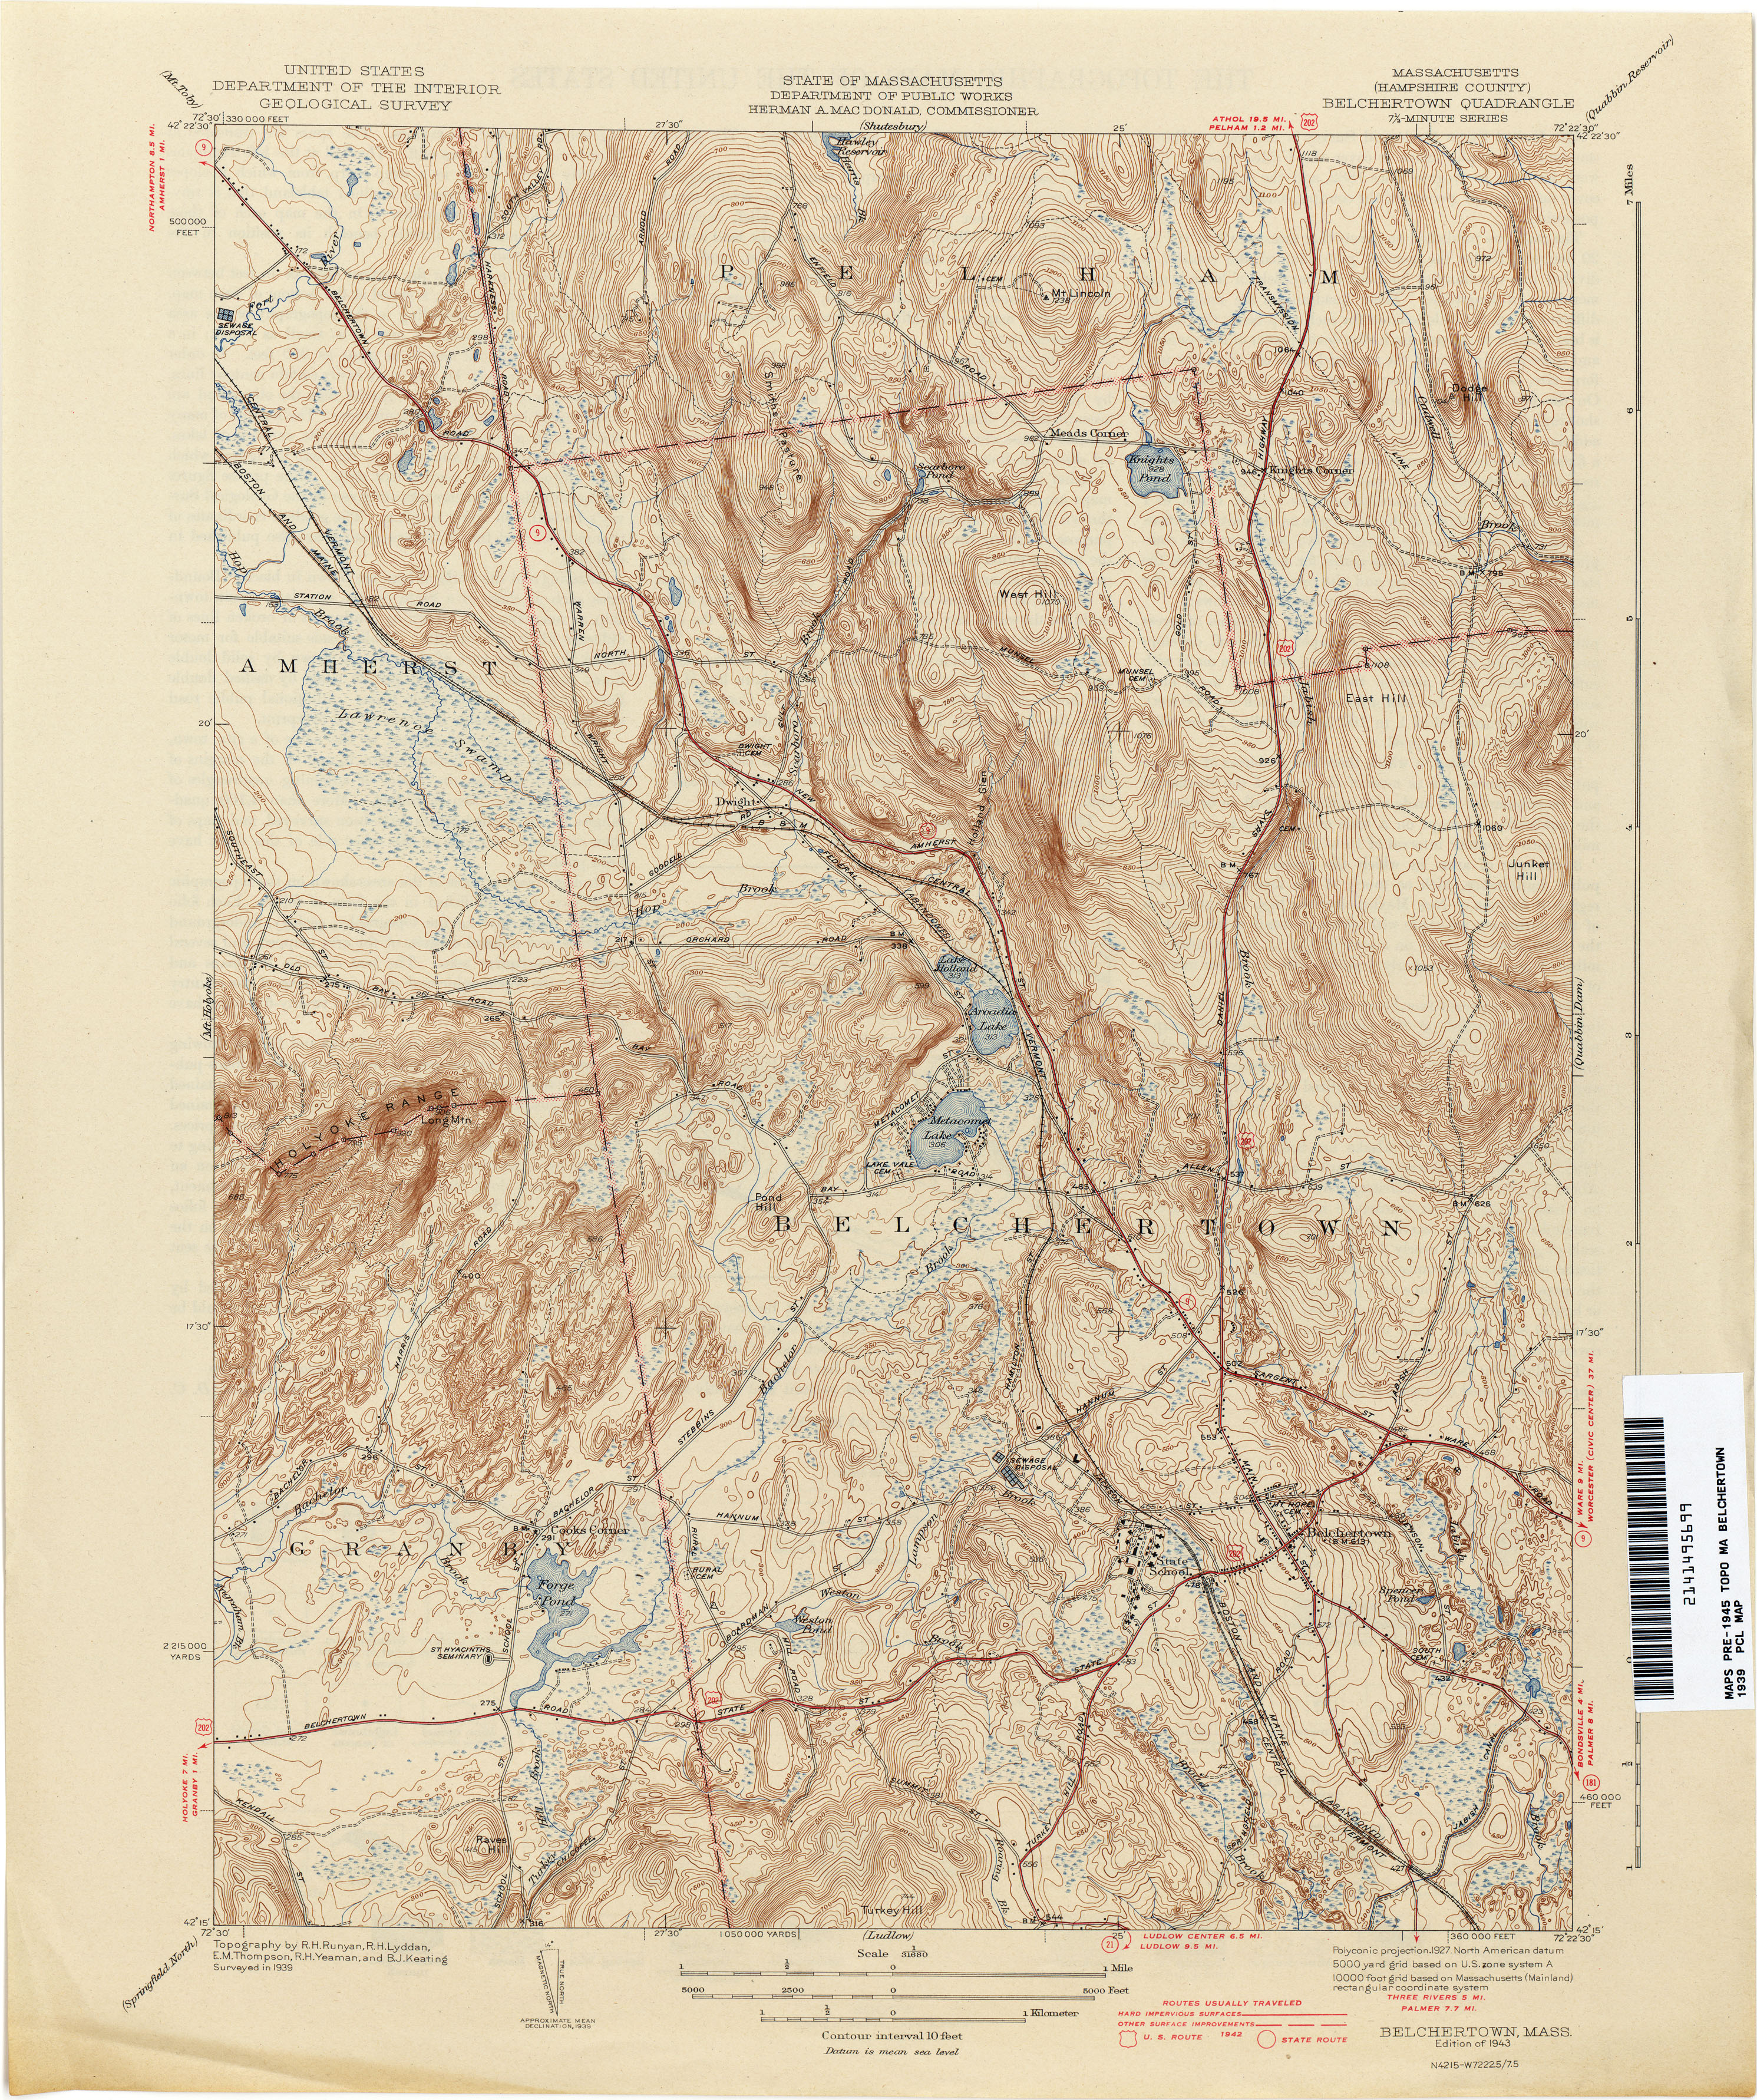 Machusetts Historical Topographic Maps - Perry-Castañeda Map ... on